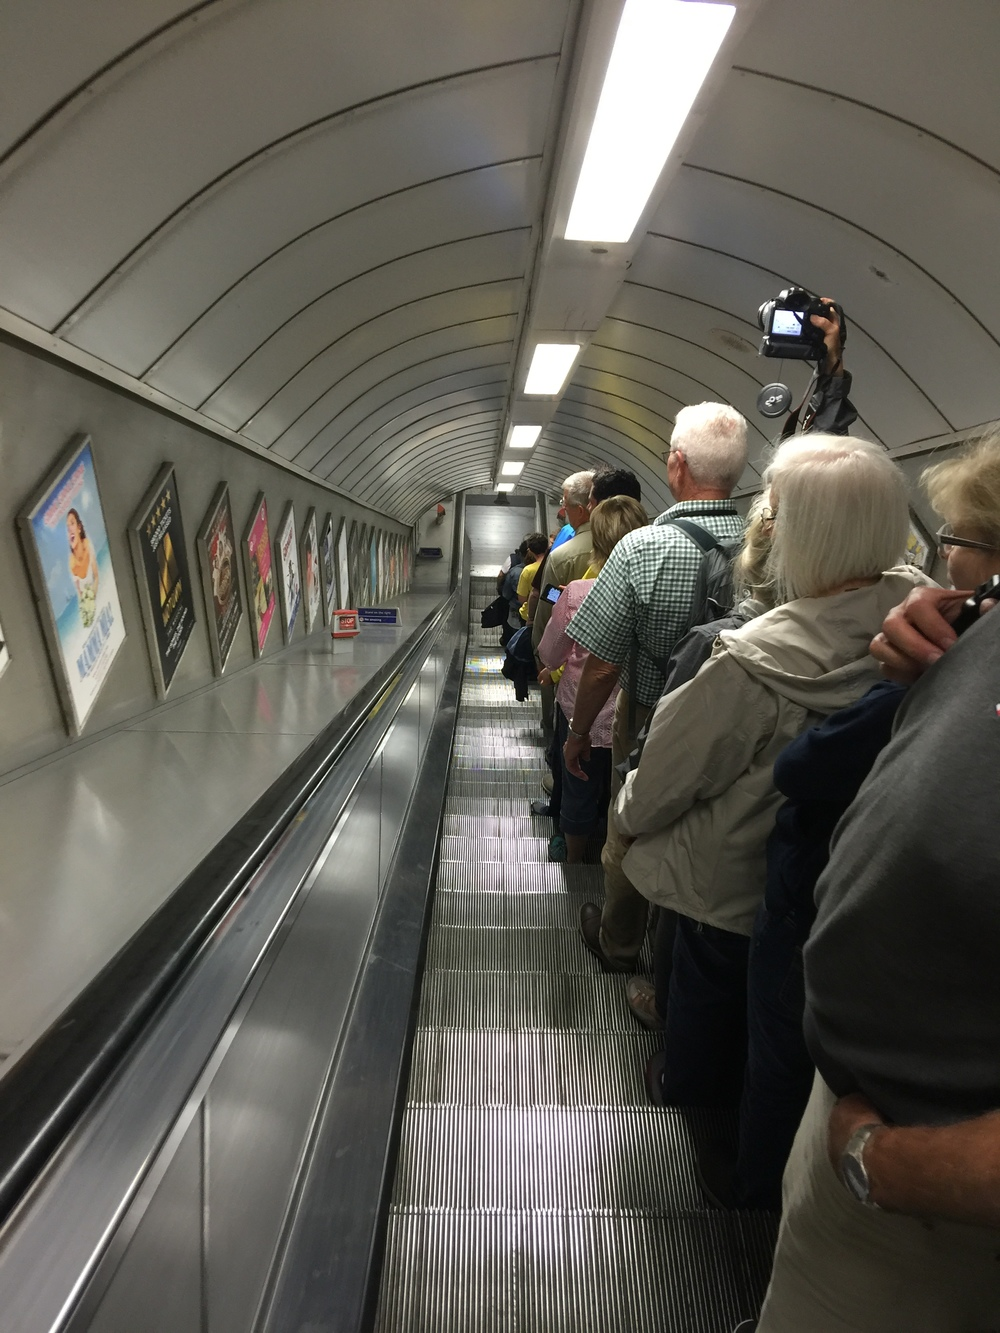 One of many descents into the Tube.